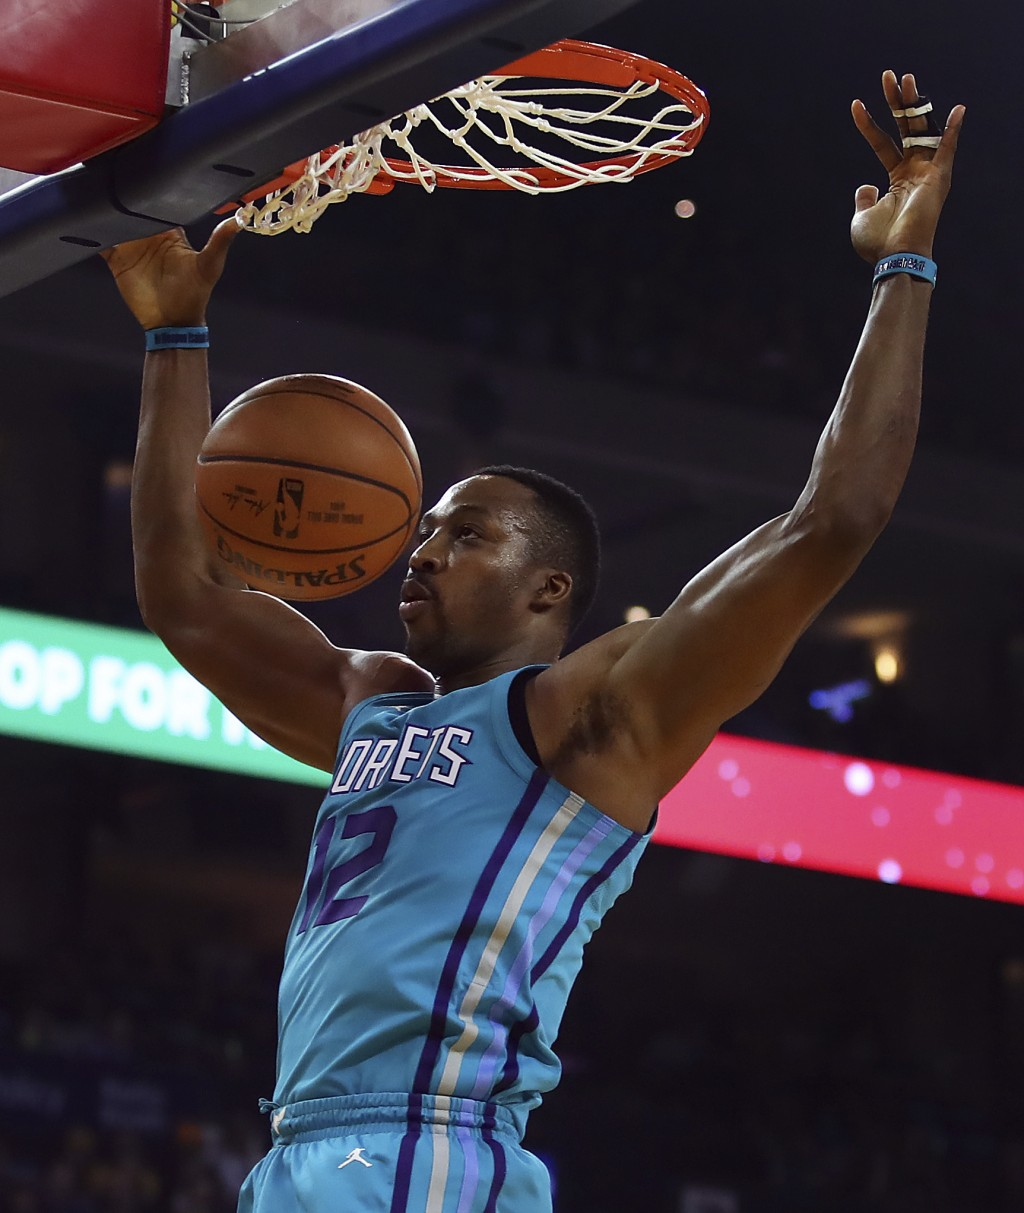 Charlotte Hornets' Dwight Howard scores against the Golden State Warriors during the first half of an NBA basketball game Friday, Dec. 29, 2017, in Oa...